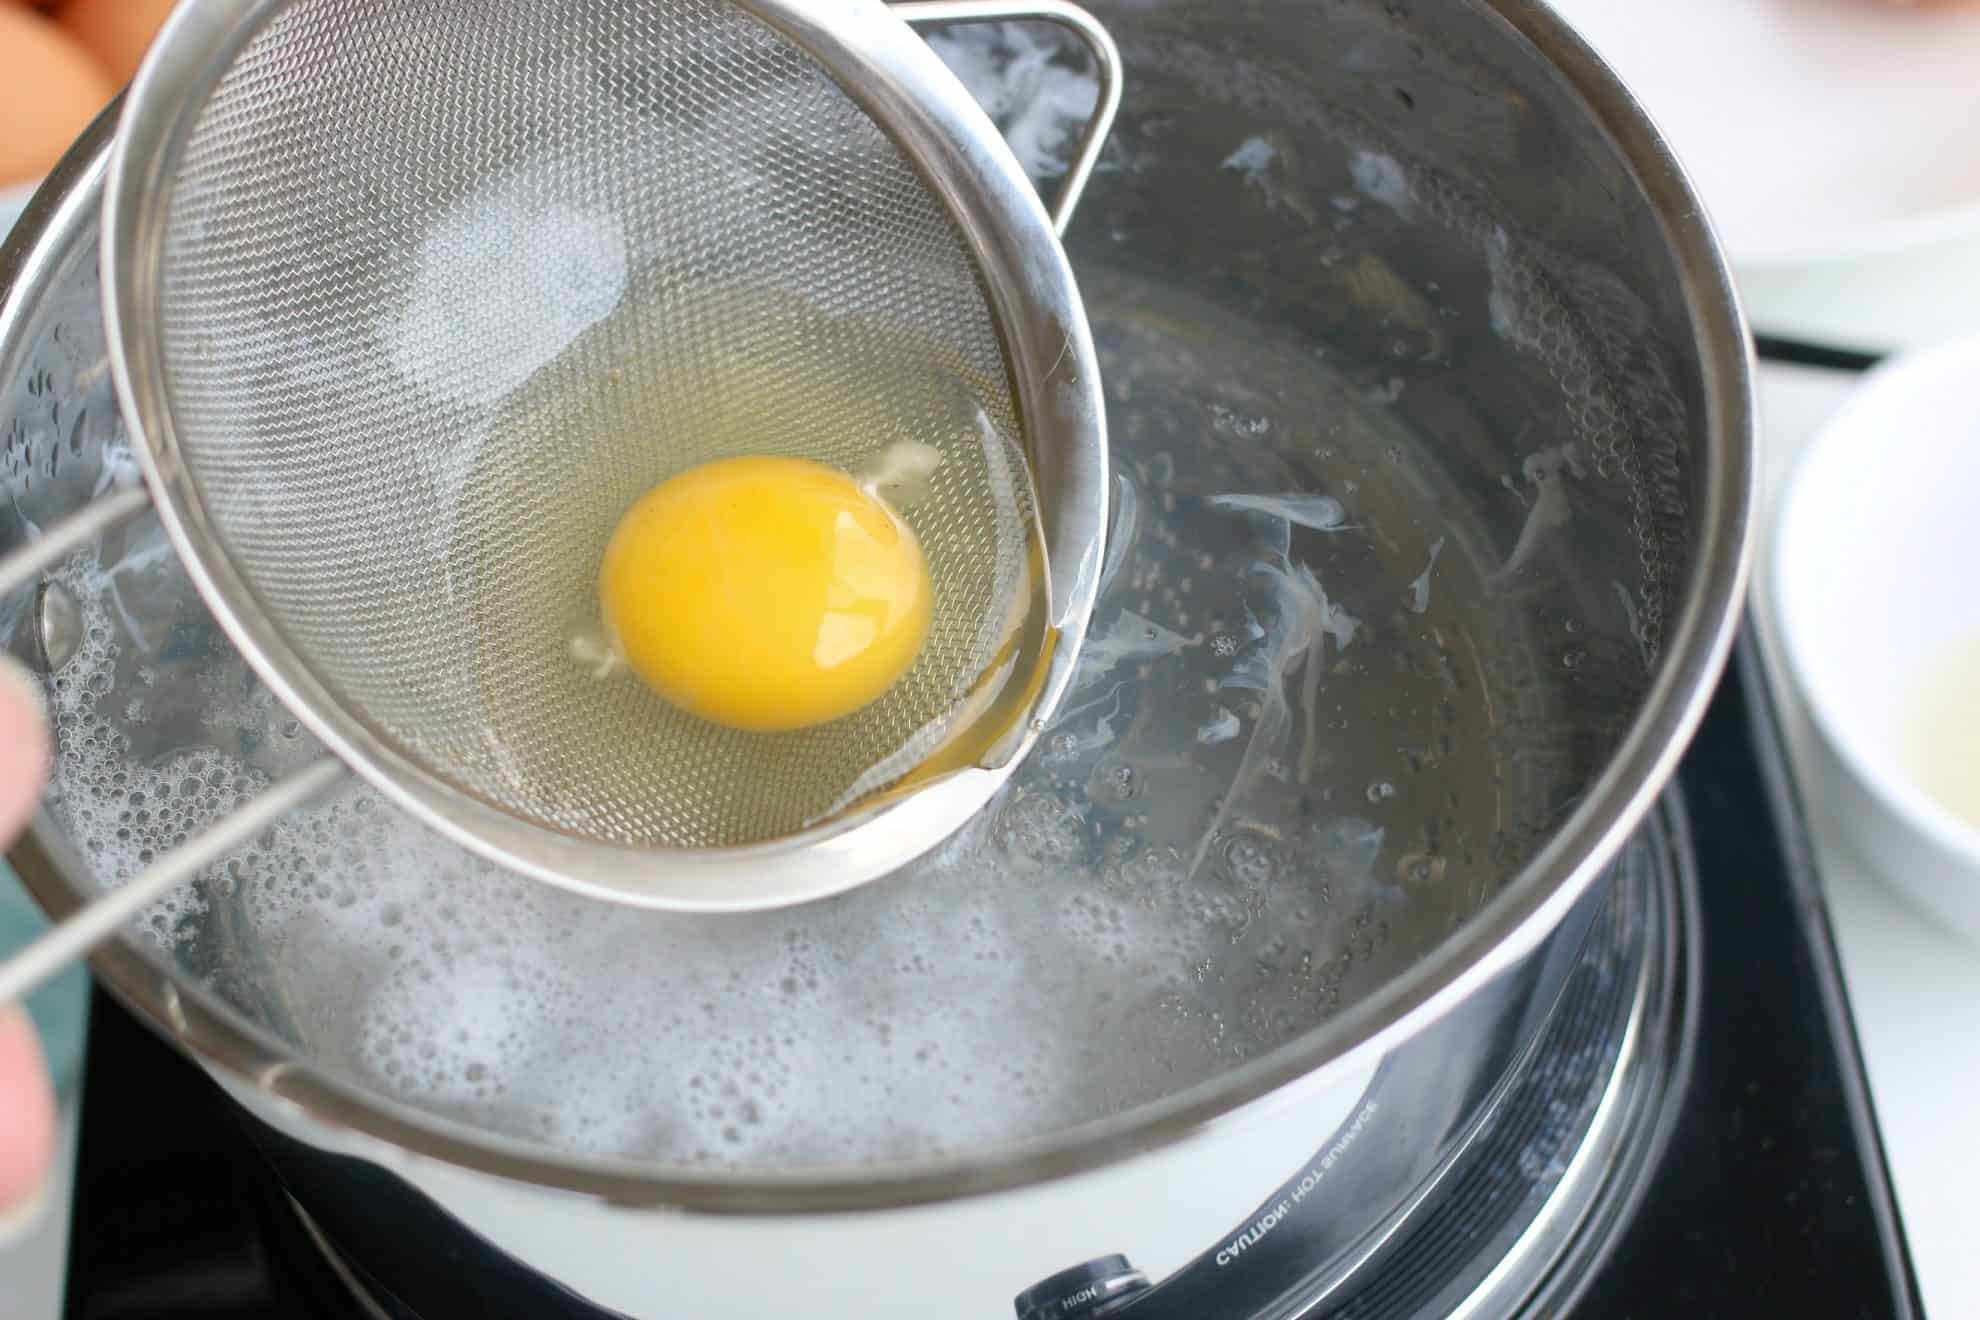 Adding an egg to simmering water to make poached eggs